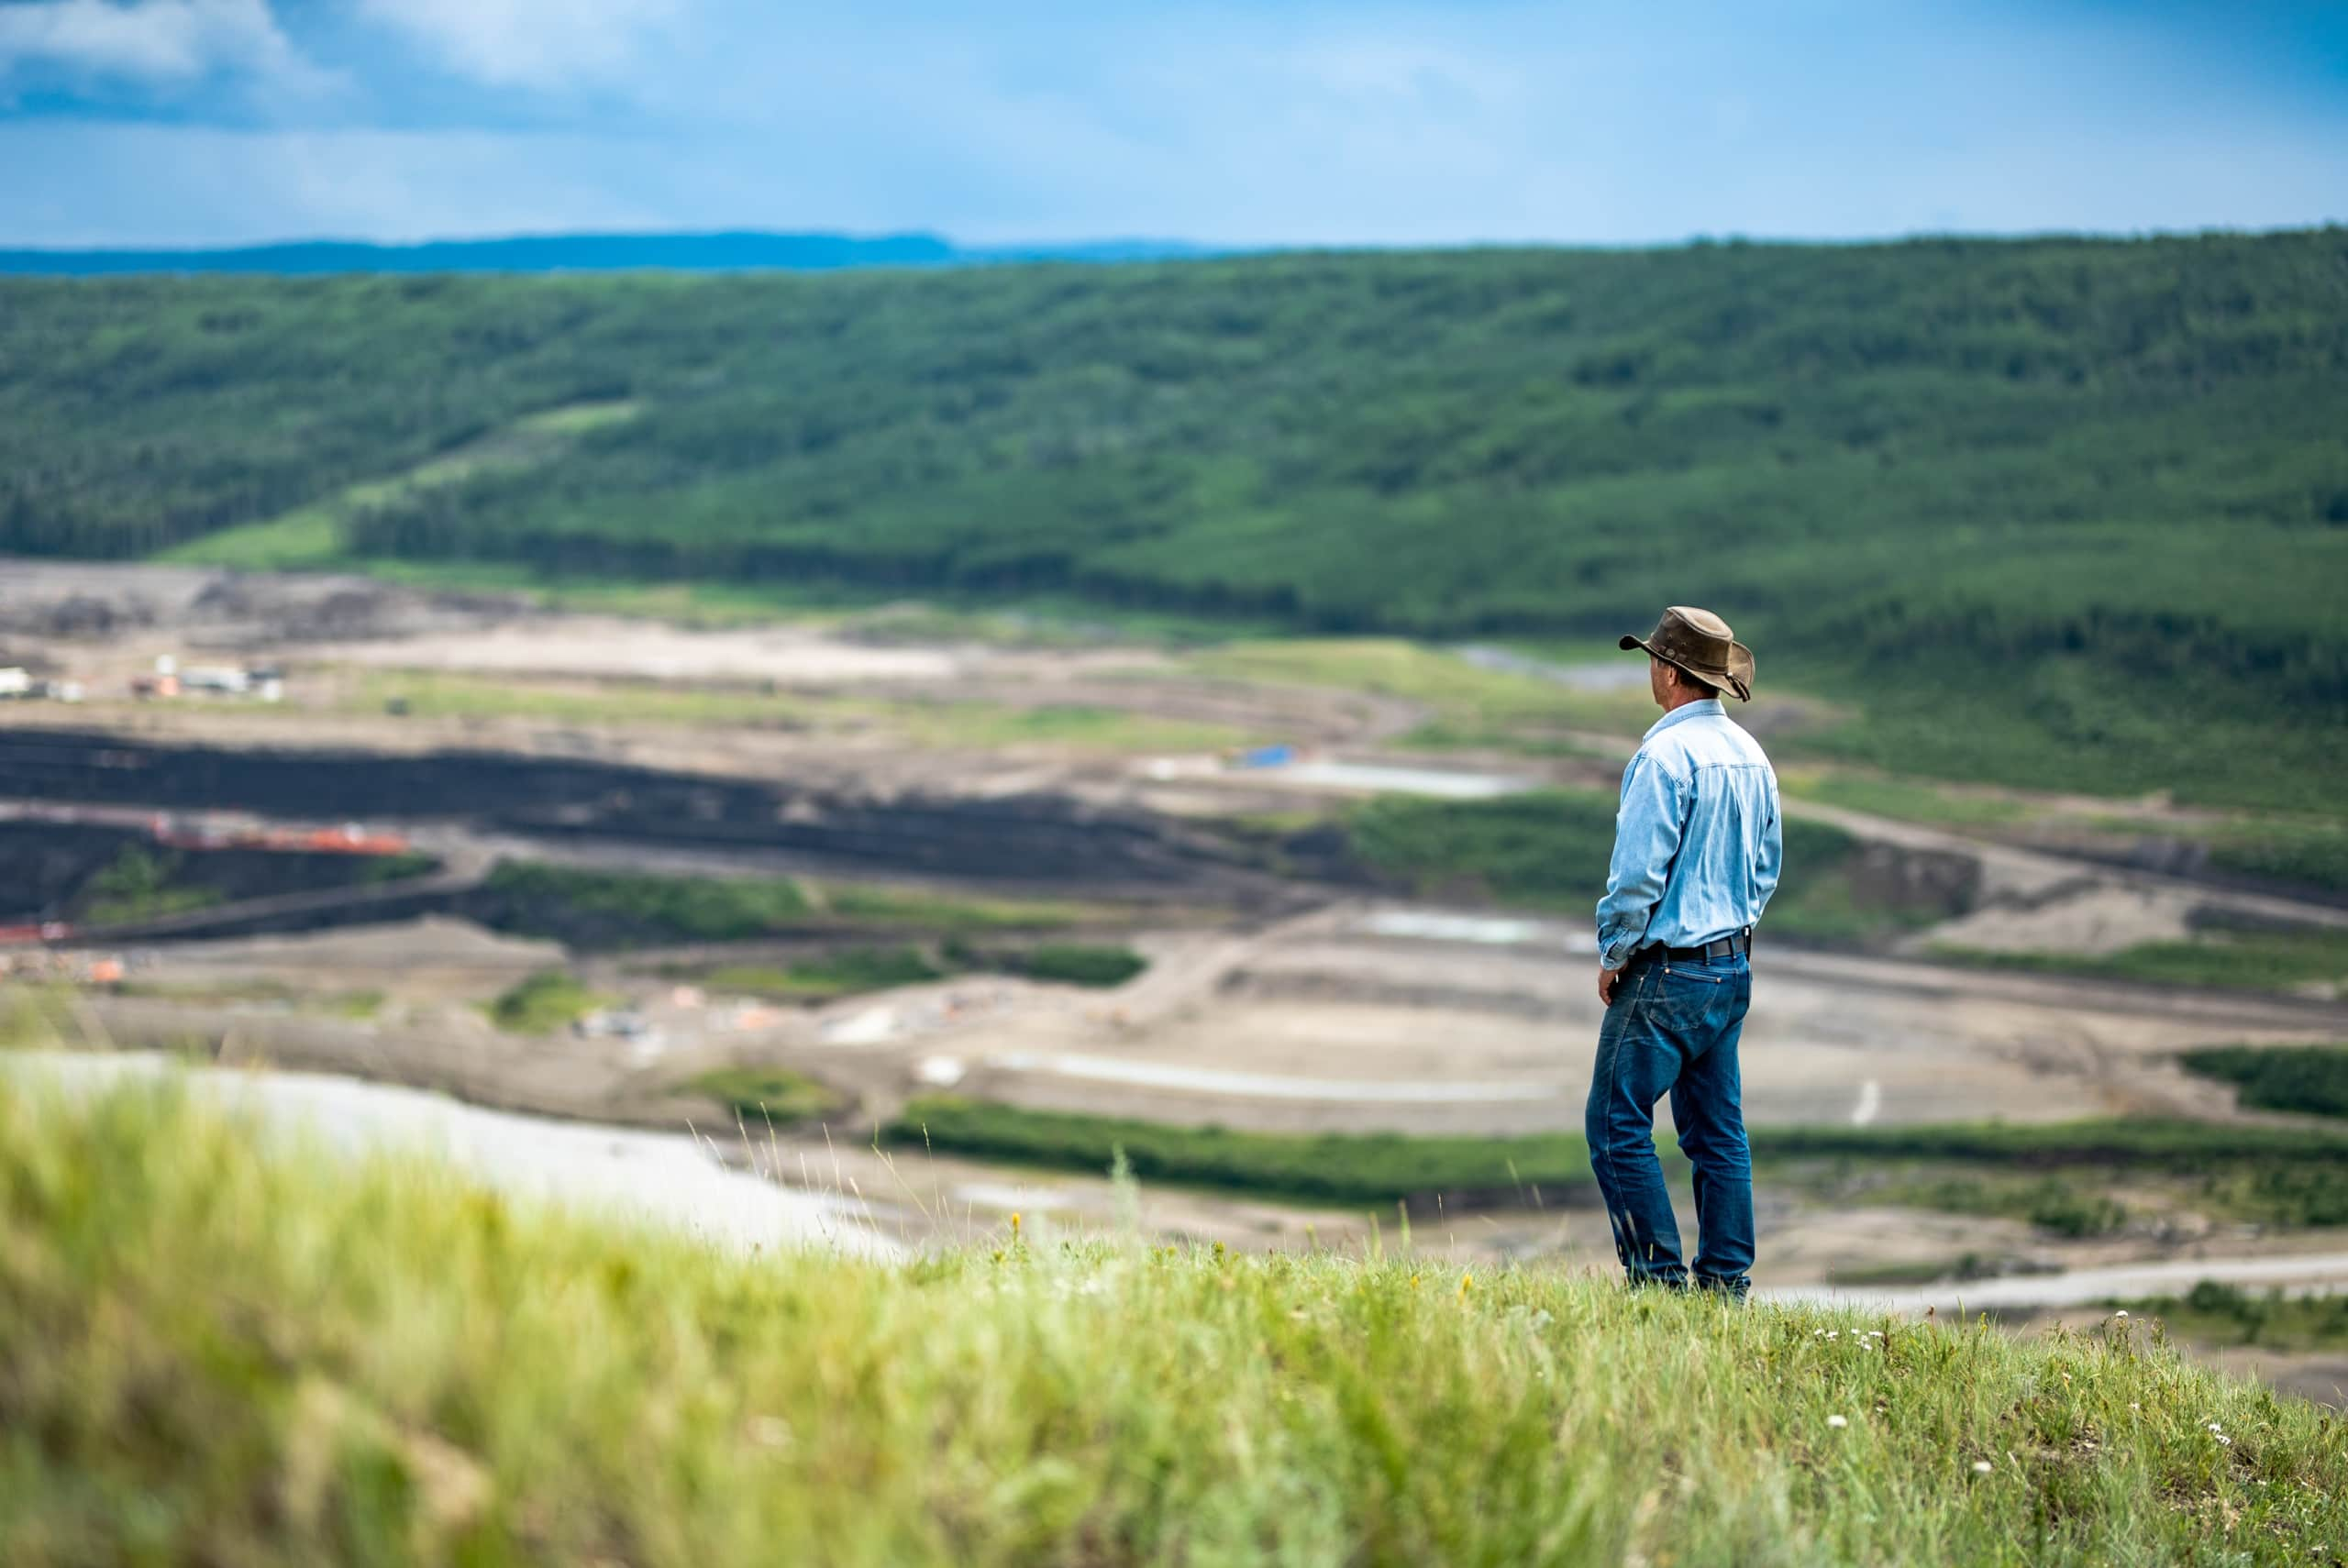 'A colossal waste': BC Hydro report hints at cost overruns at Site C dam